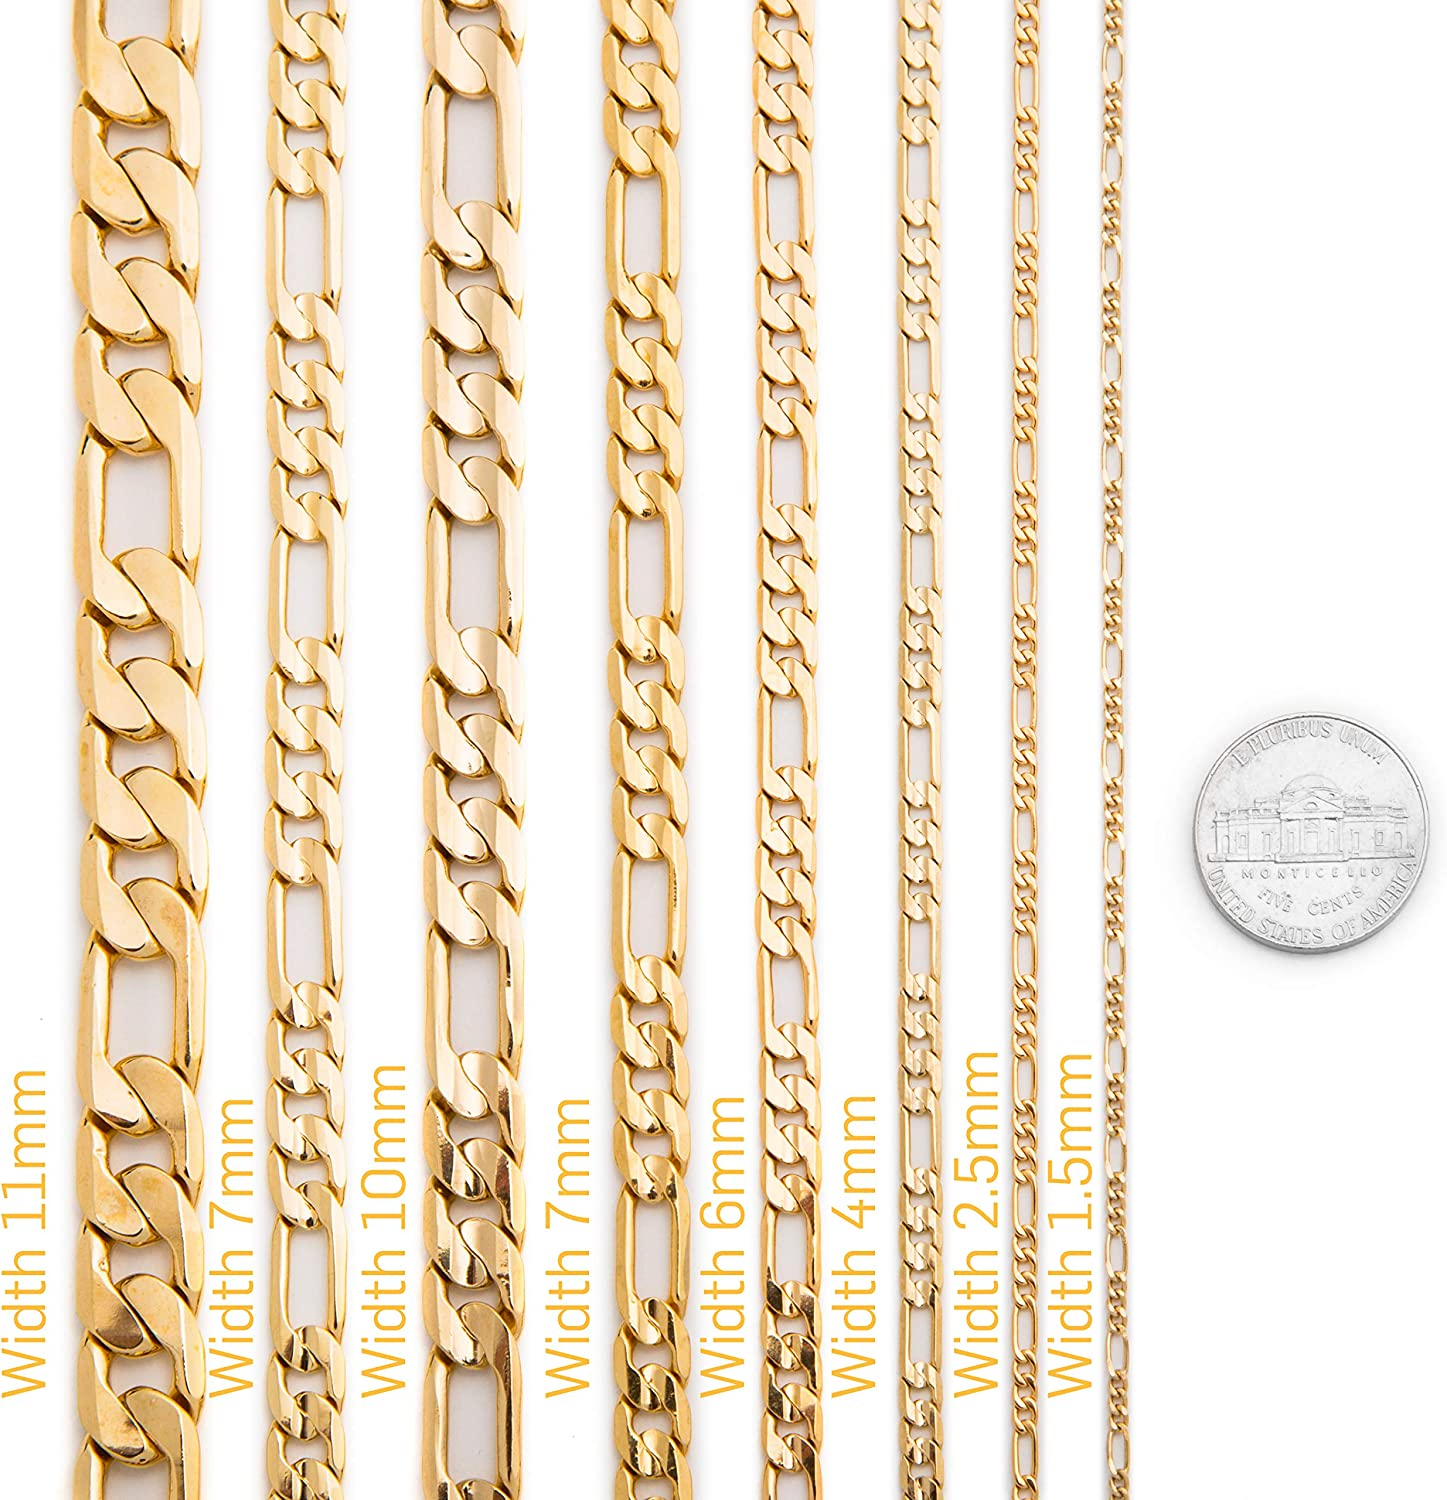 Free Lifetime Replacement Guarantee Made in USA 18-36 Inches Lifetime Jewelry 7mm Gold Figaro Chain with up to 20X More Real 24k Gold Plating Than Other Fashion Jewelry Necklaces